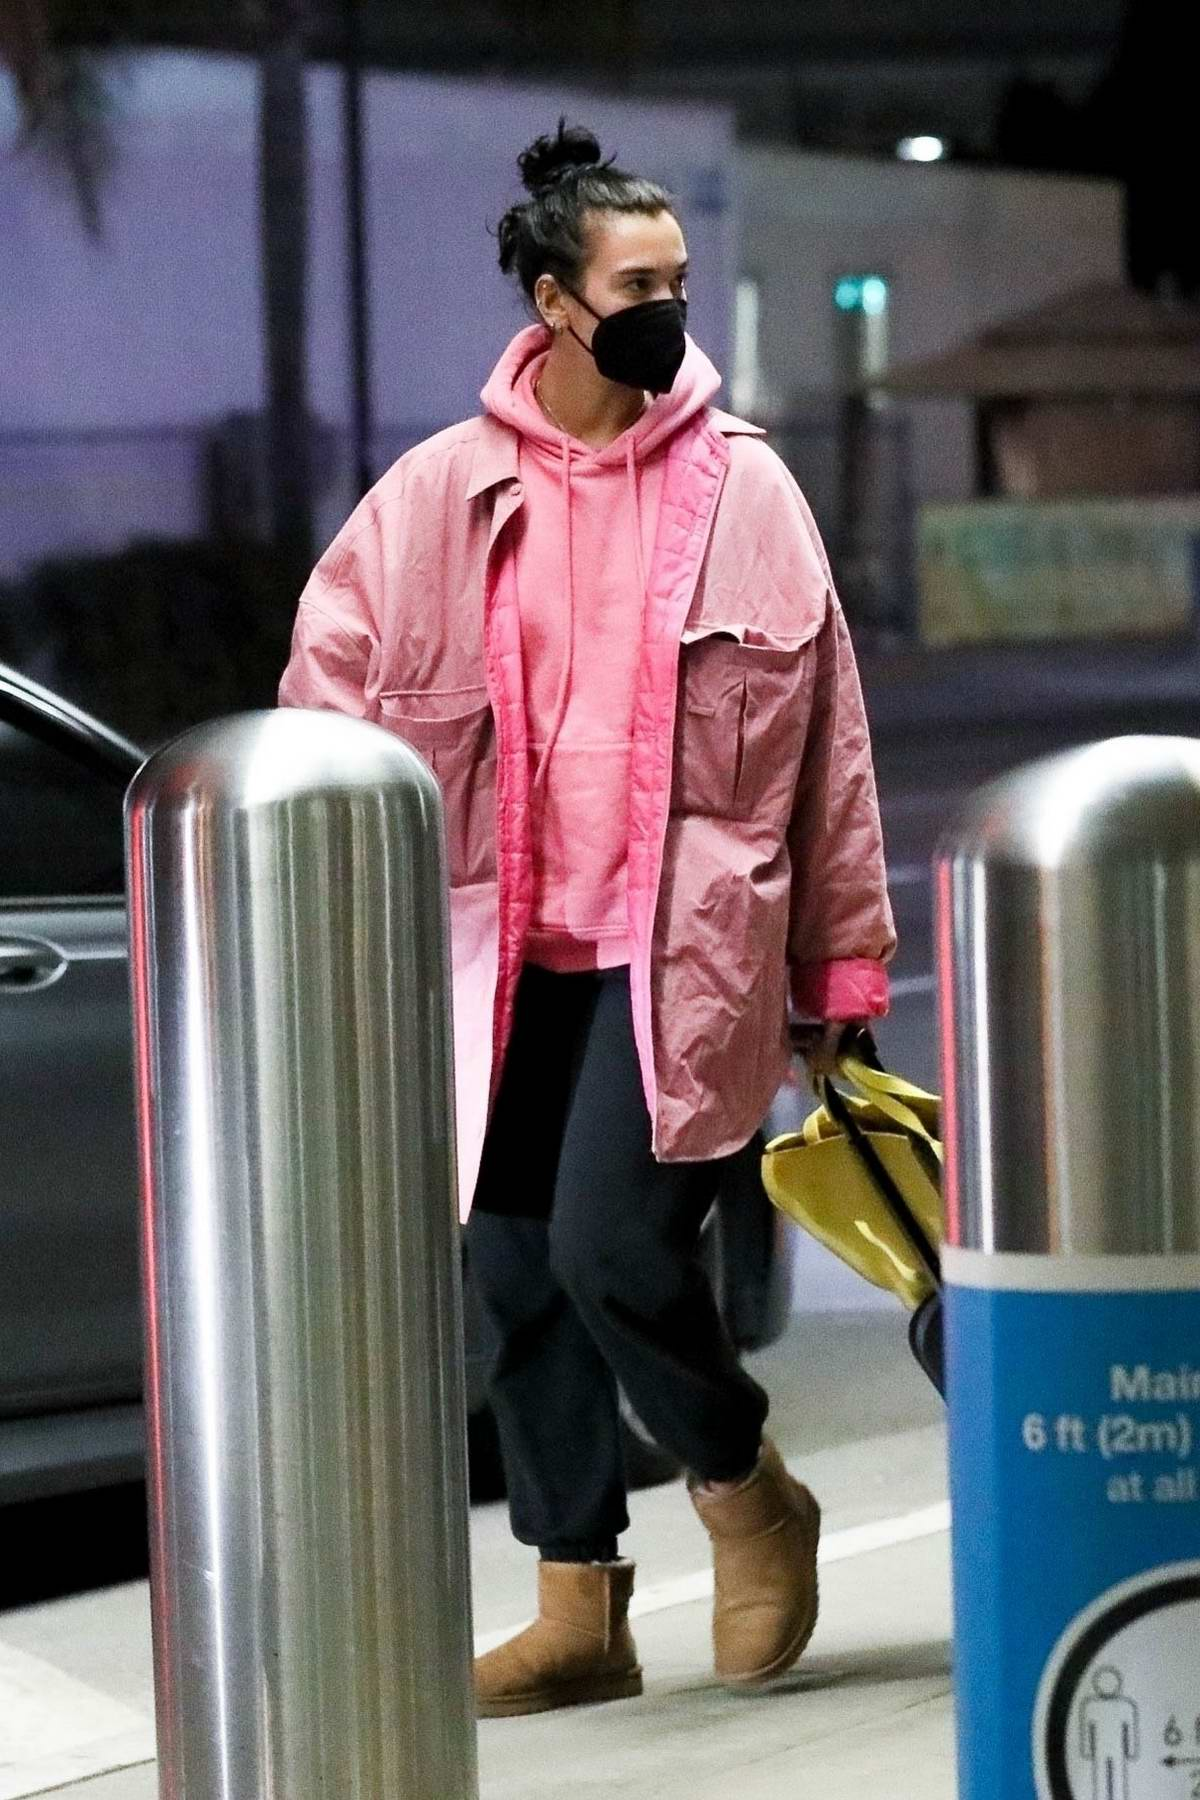 Dua Lipa looks cozy in sweats as she arrives at LAX in Los Angeles